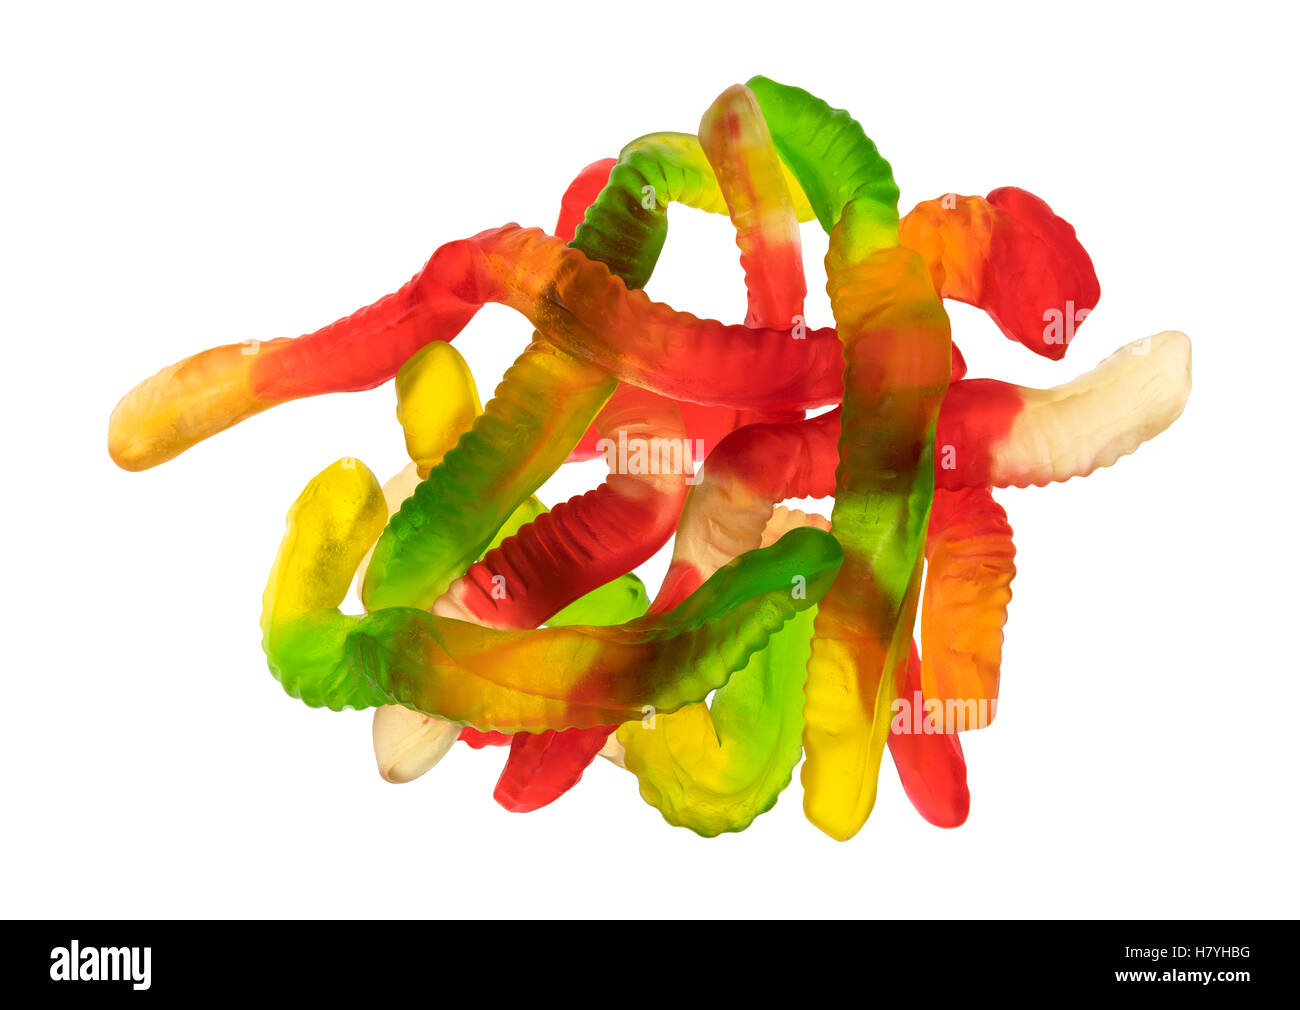 Top view of a group of colorful gummy worms isolated on a white background. - Stock Image